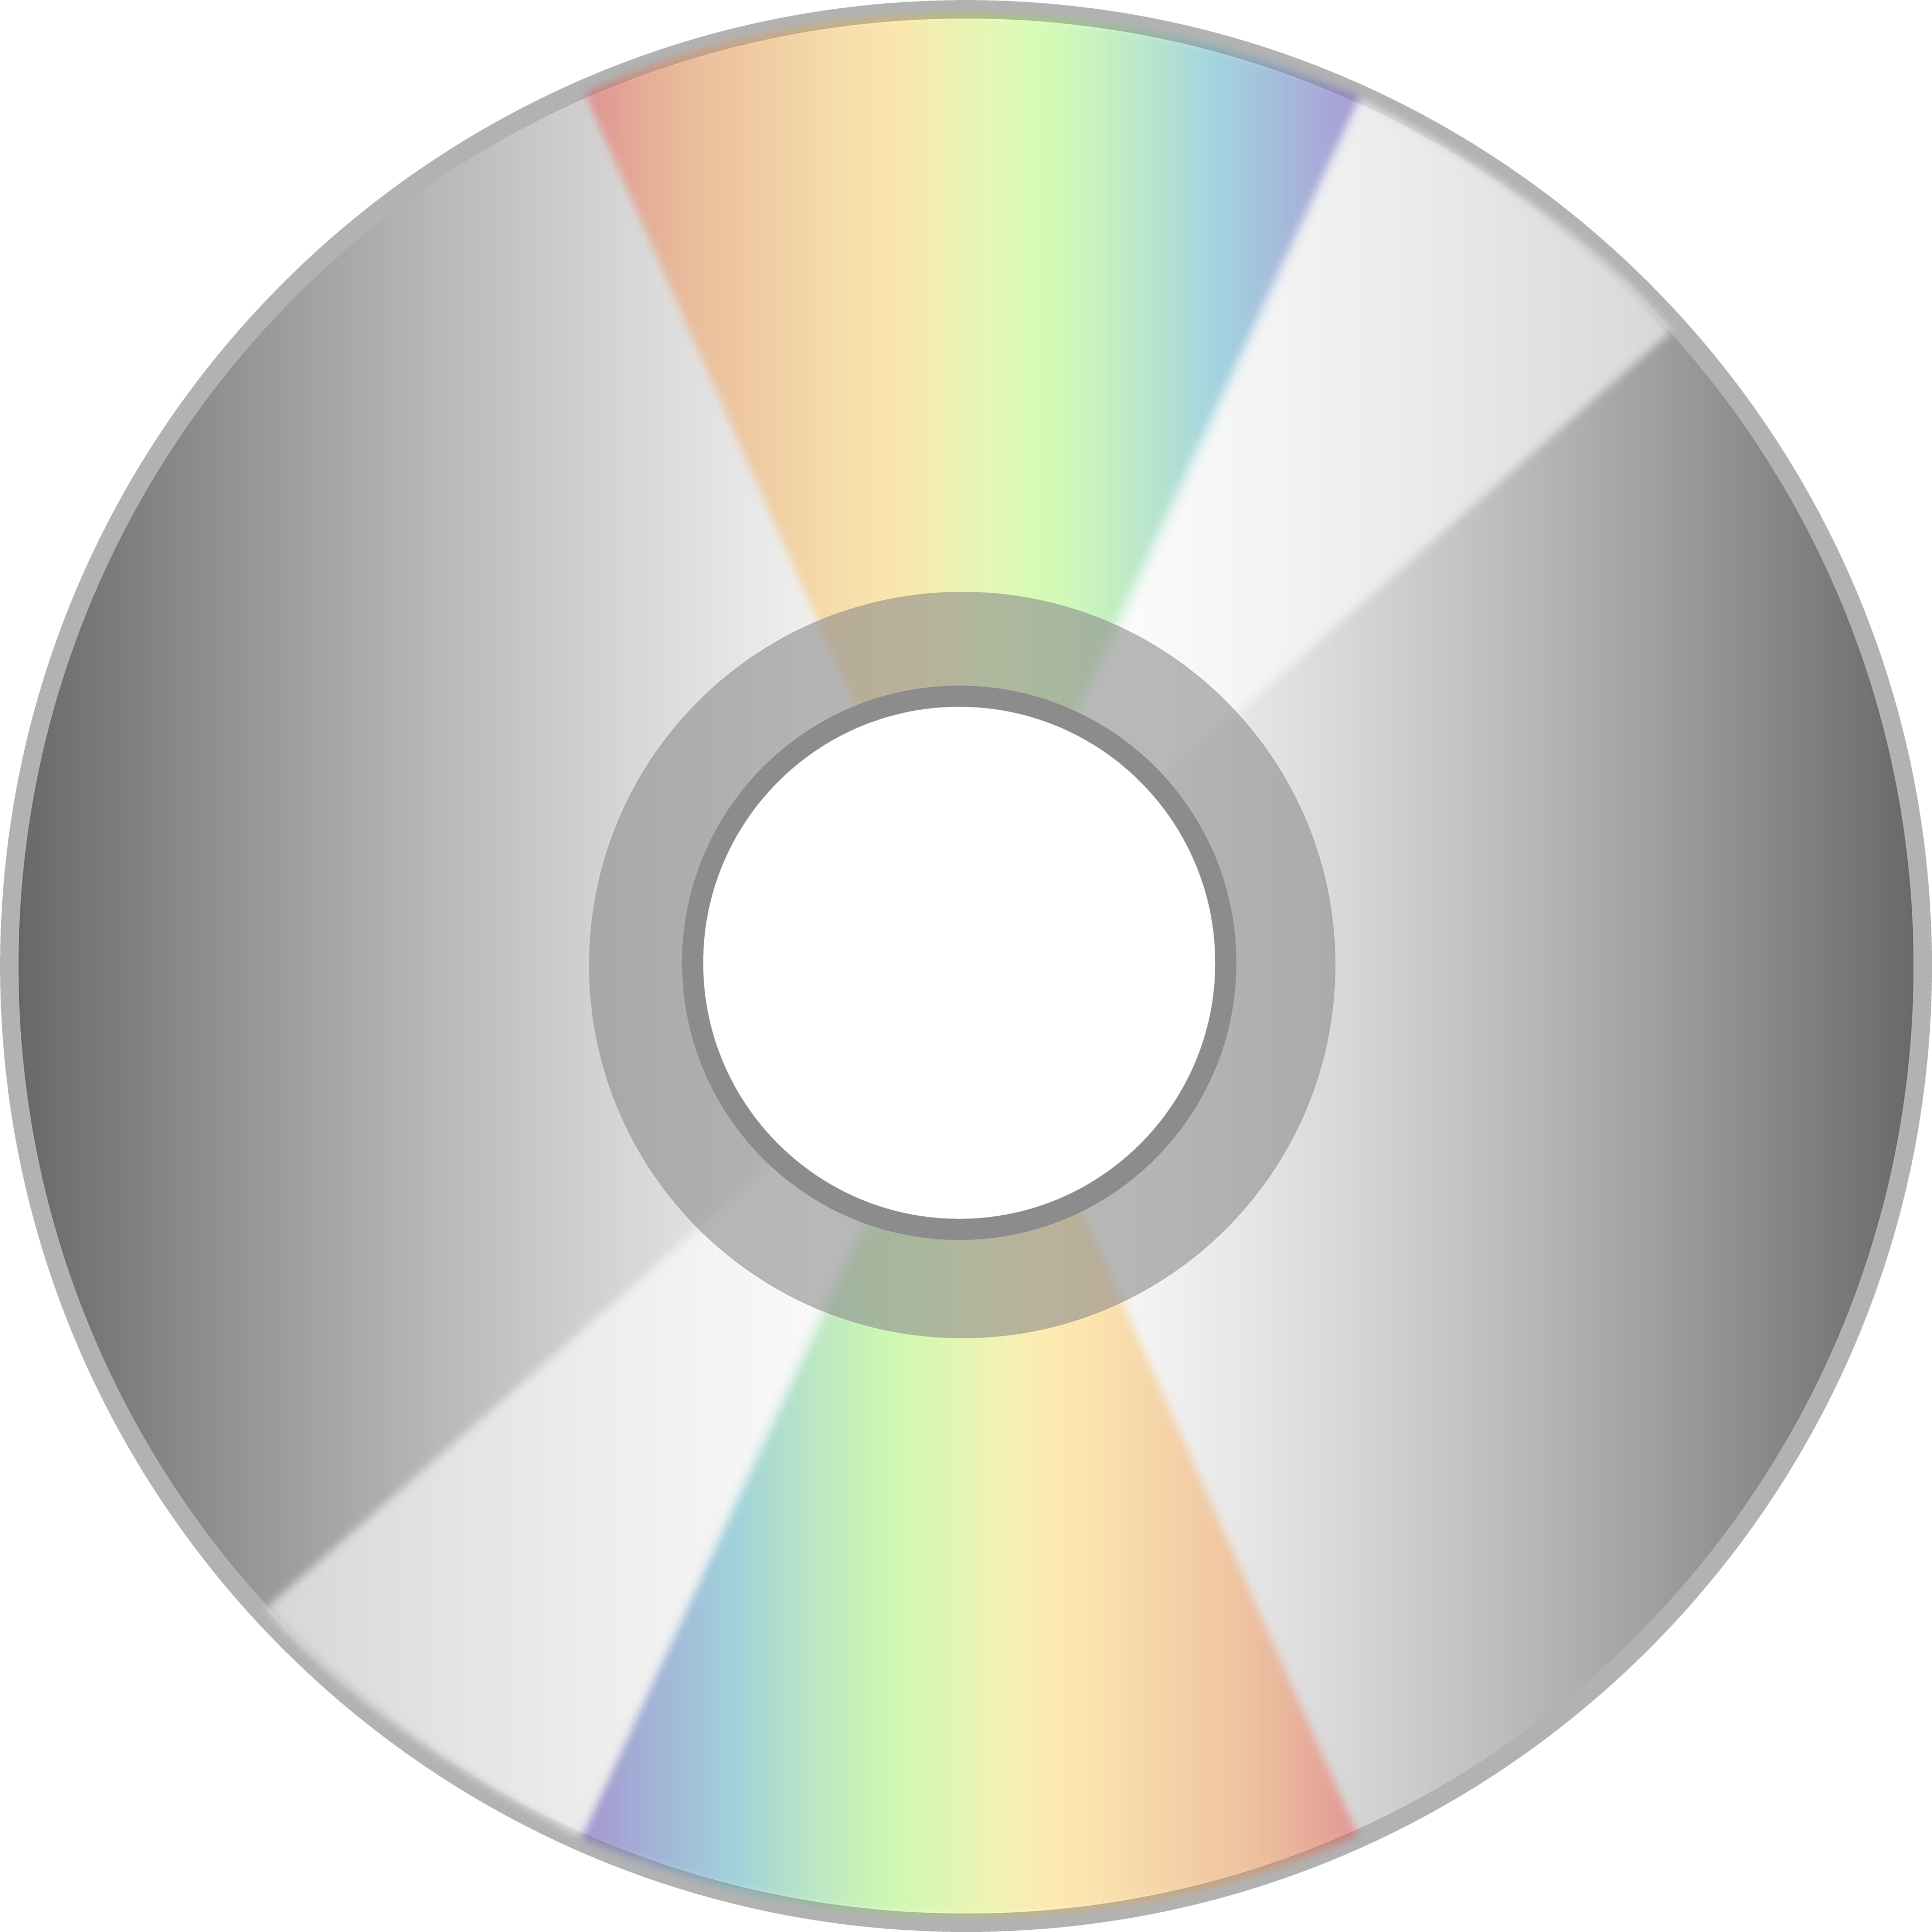 Cd clipart transparent background. Compact disk png images